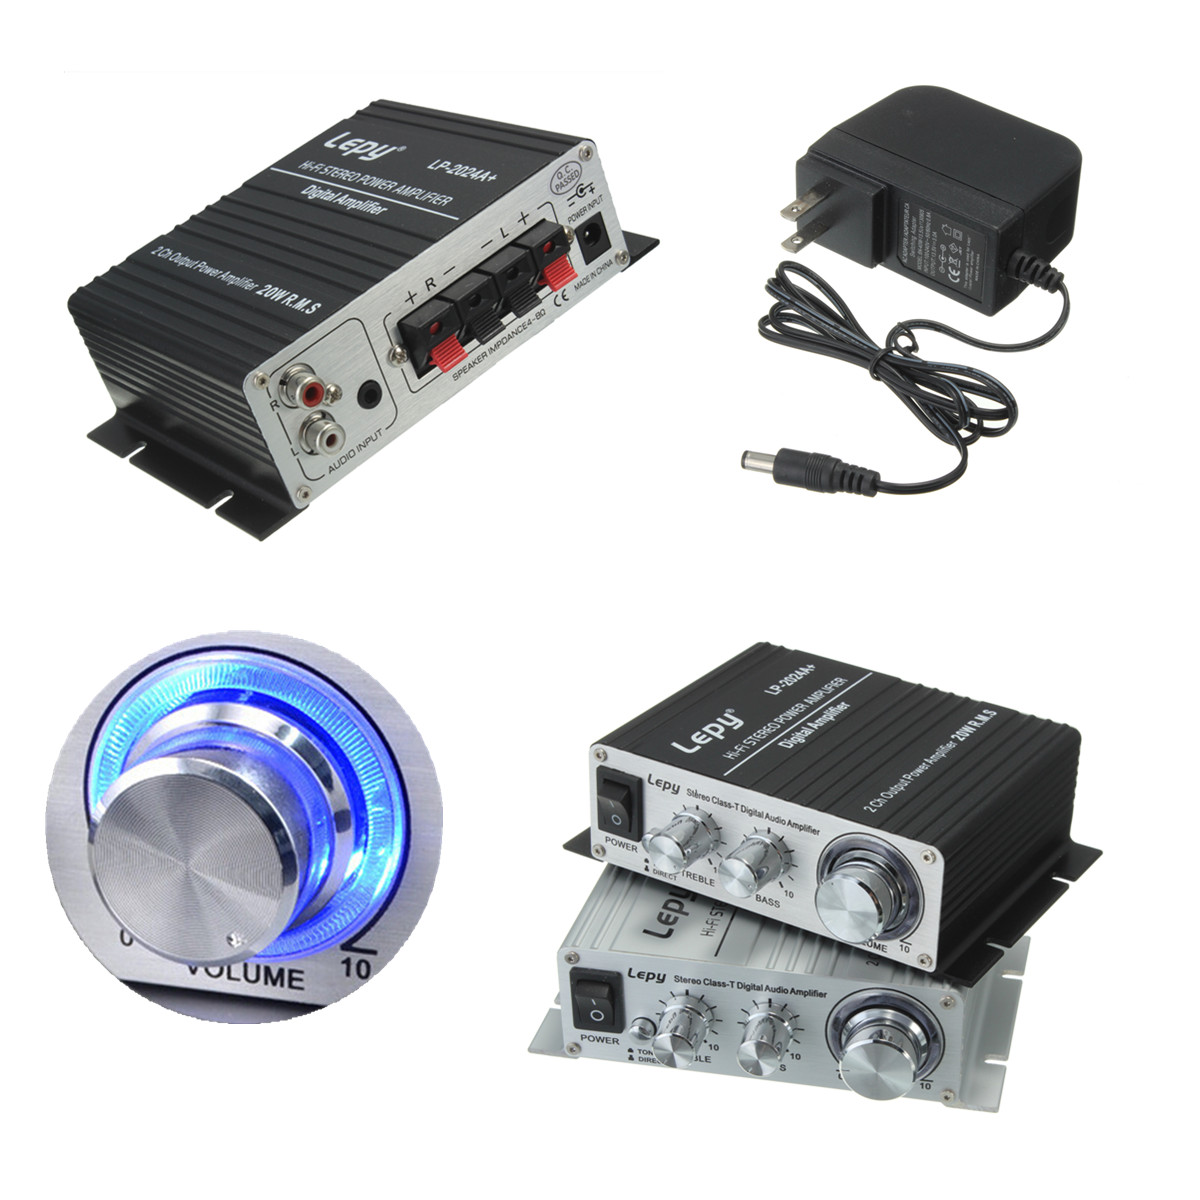 12v digital stereo audio voiture amplificateur led usb sd hifi mp3 haut parleur ebay. Black Bedroom Furniture Sets. Home Design Ideas